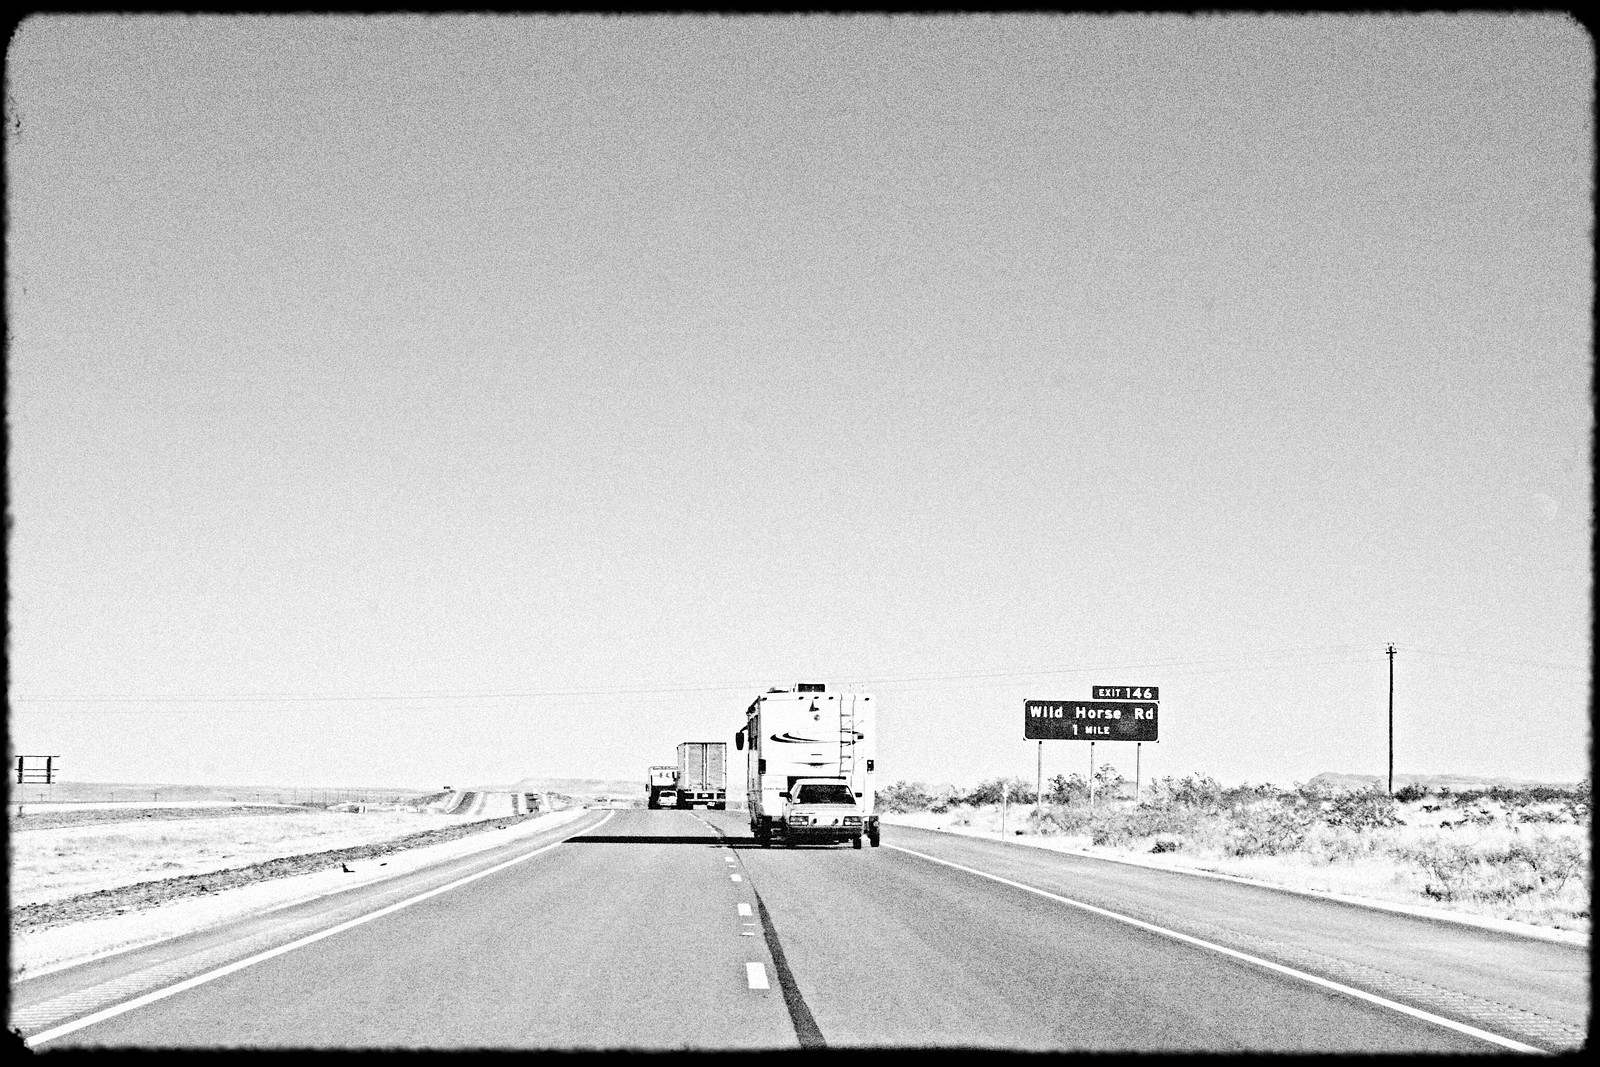 RV Towing Car Near Wild Horse Rd. Exit, Texas, 2006